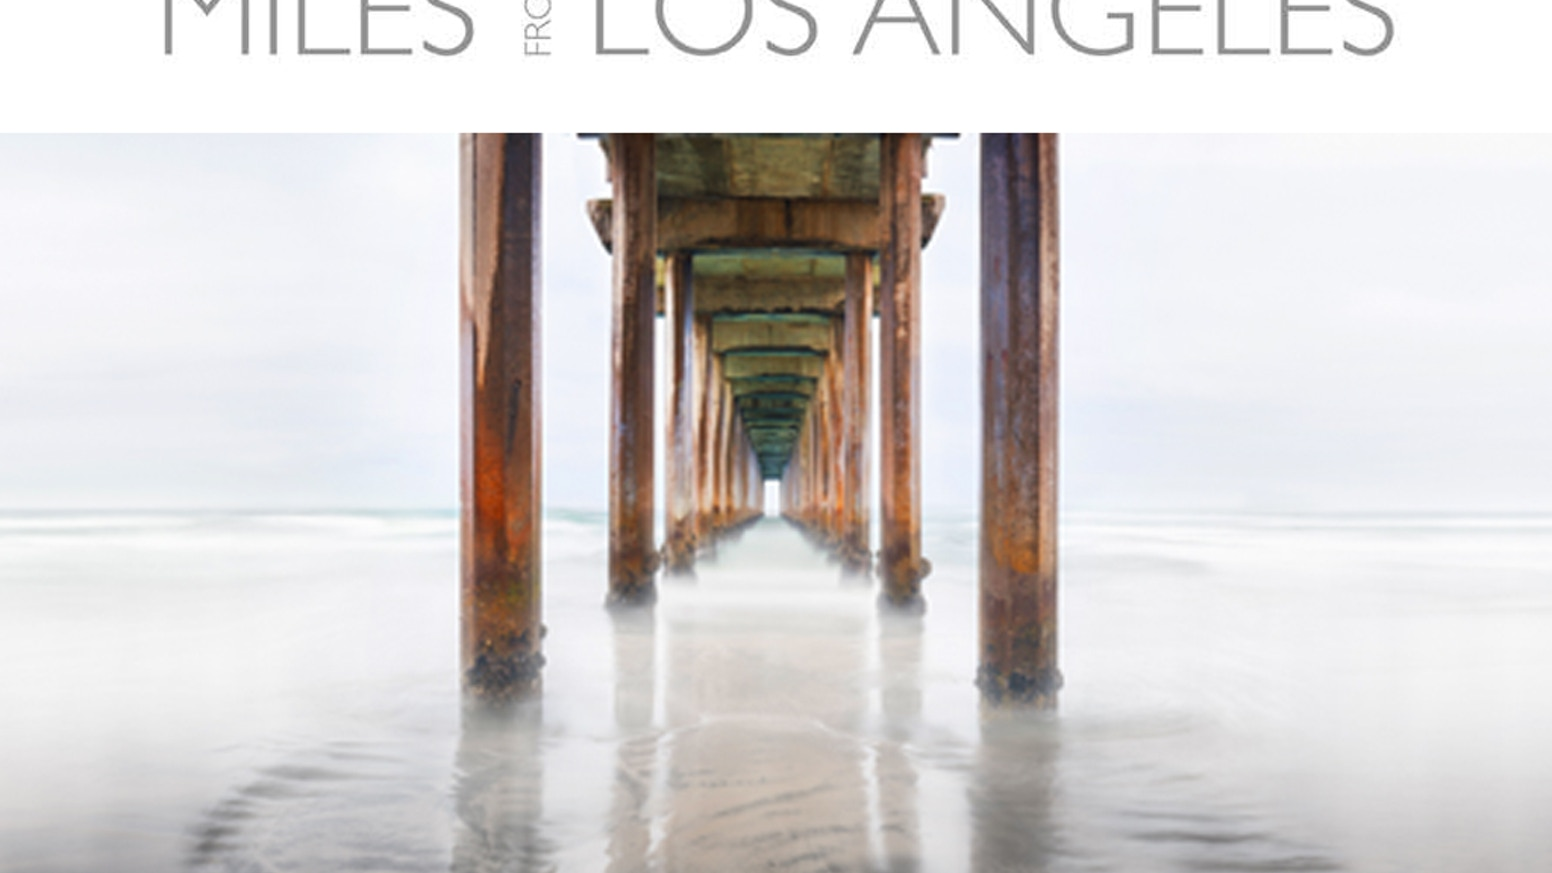 A fine art book capturing the beauty of nature in the Western United States by landscape photographer Cheyne Walls.